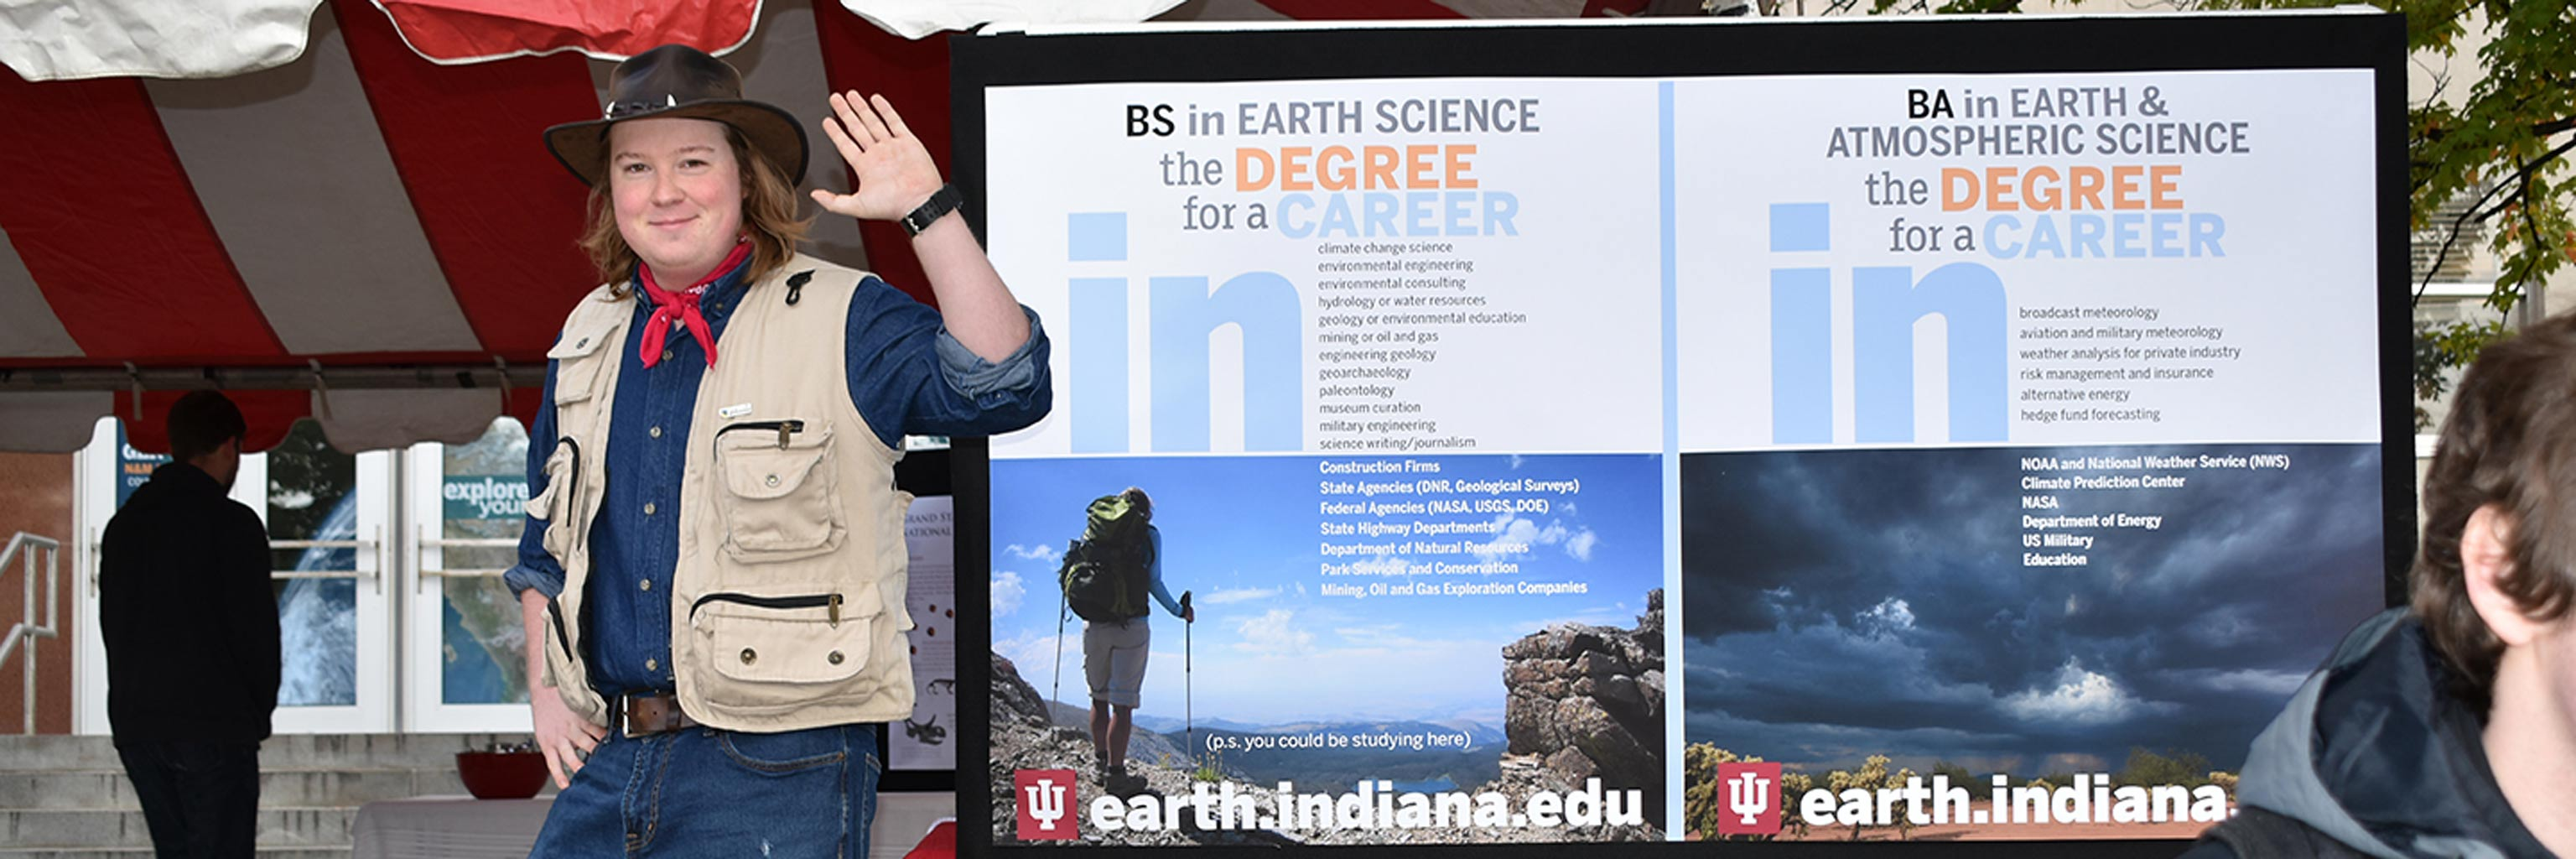 Earth and Atmospheric Sciences department meet and greet